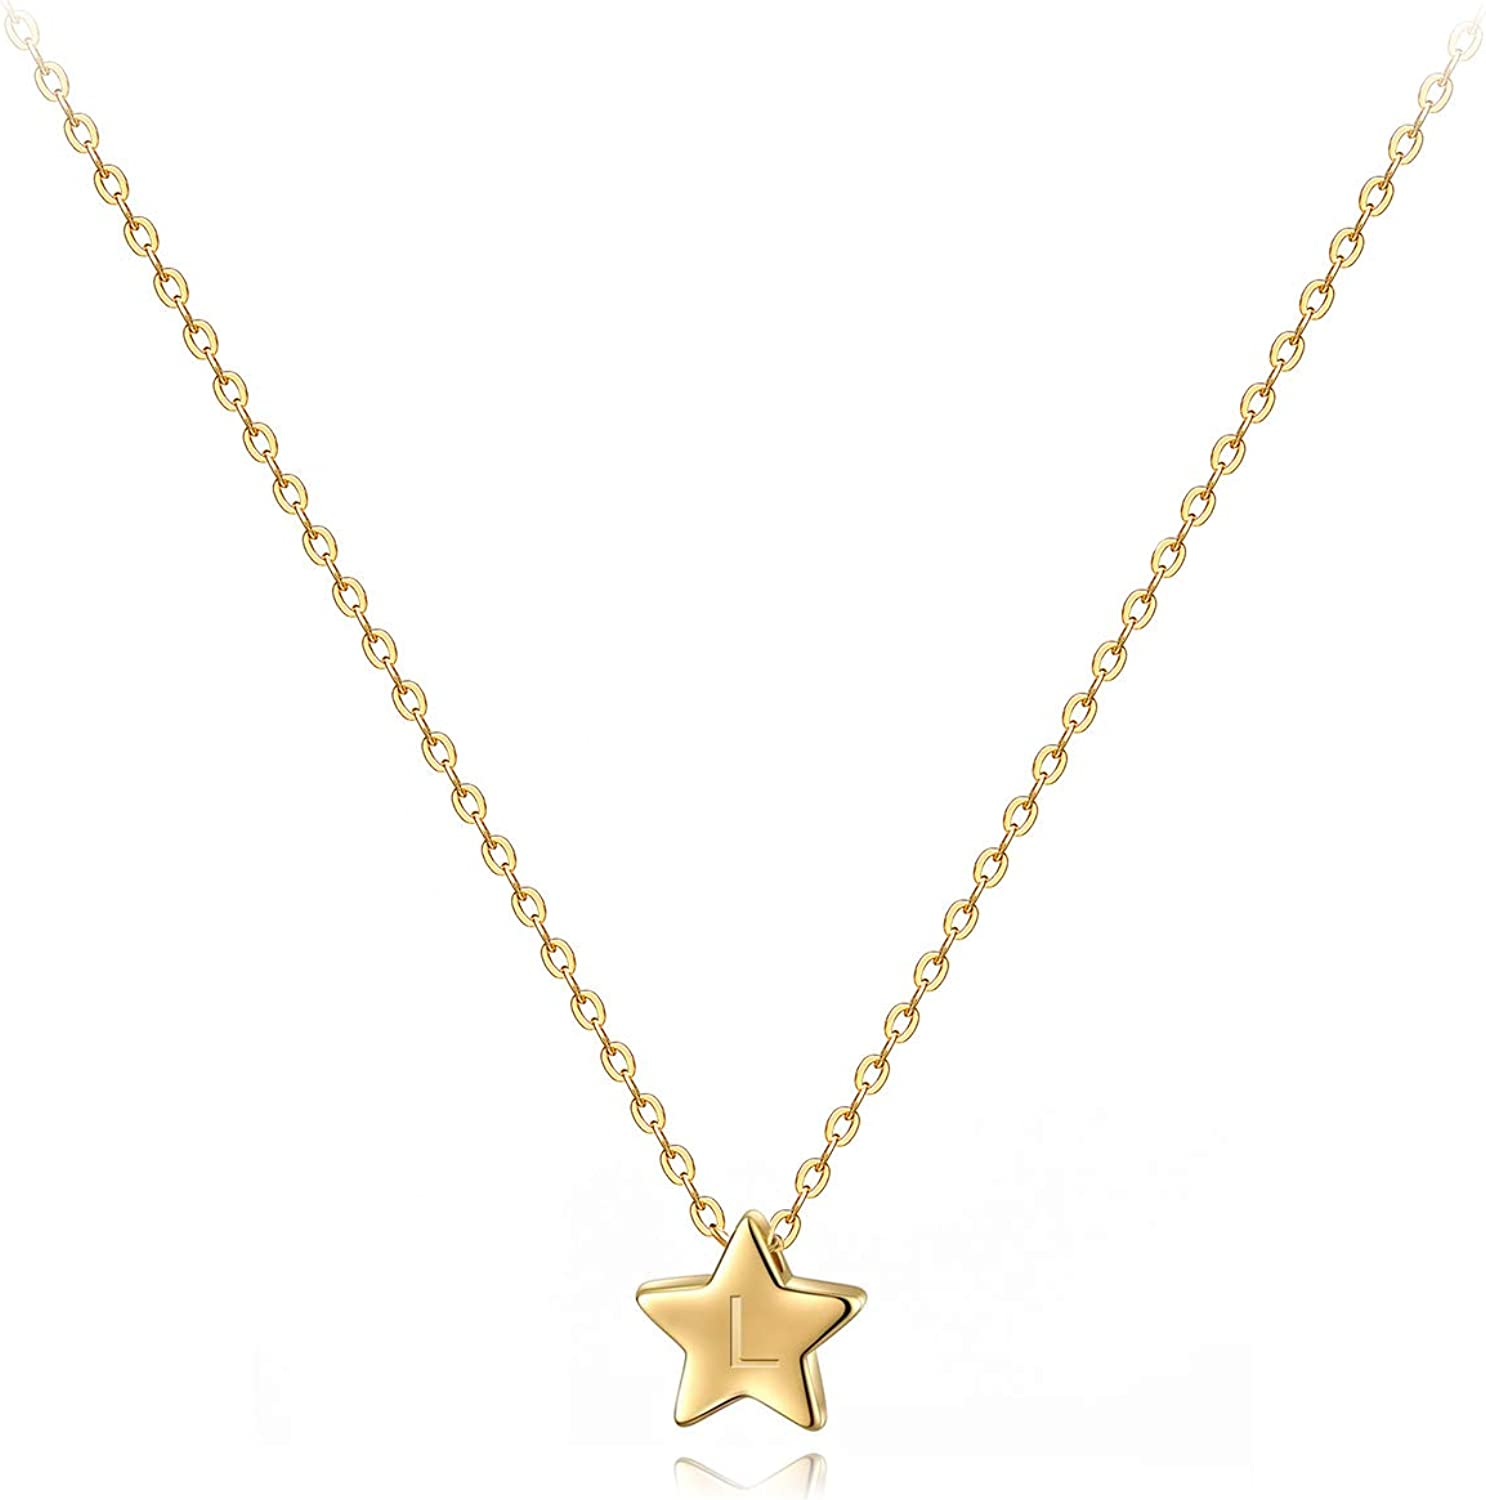 CITLED Women Initial Necklace Gold Star Pendant Engraved Alphabet Letter 14K Gold Filled Lucky Trendy Dainty Chain Boho Beach Simple Delicate Handmade Jewelry Gift